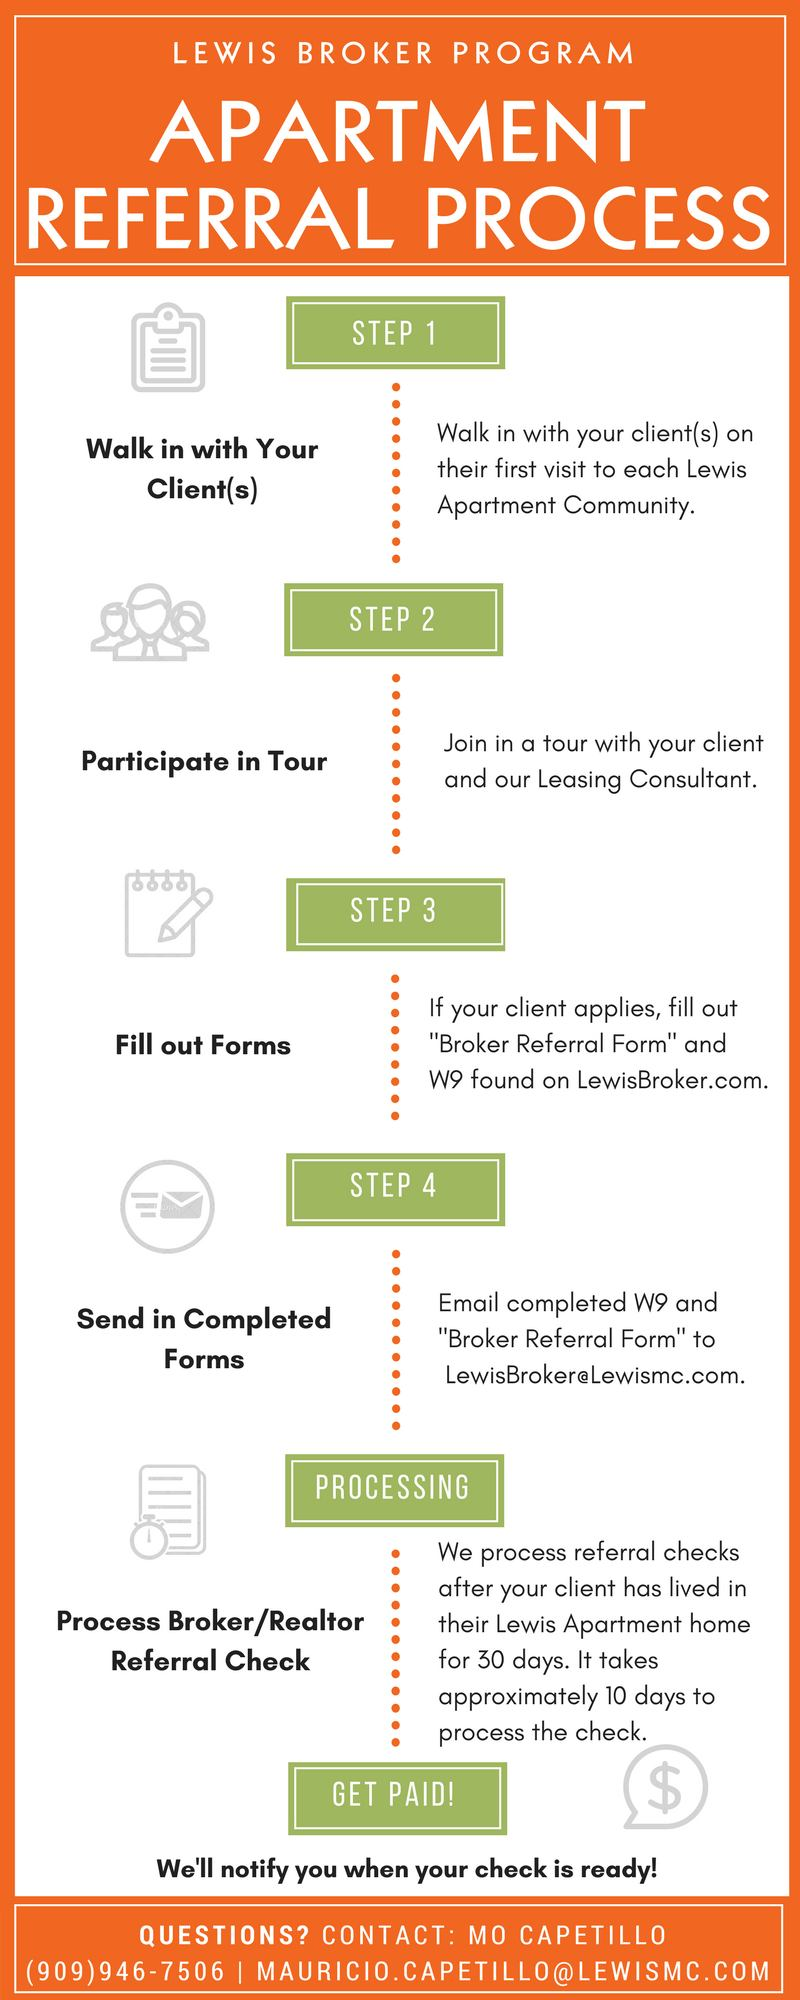 Apartment Referrals Process Infographic For Lewis Broker Program